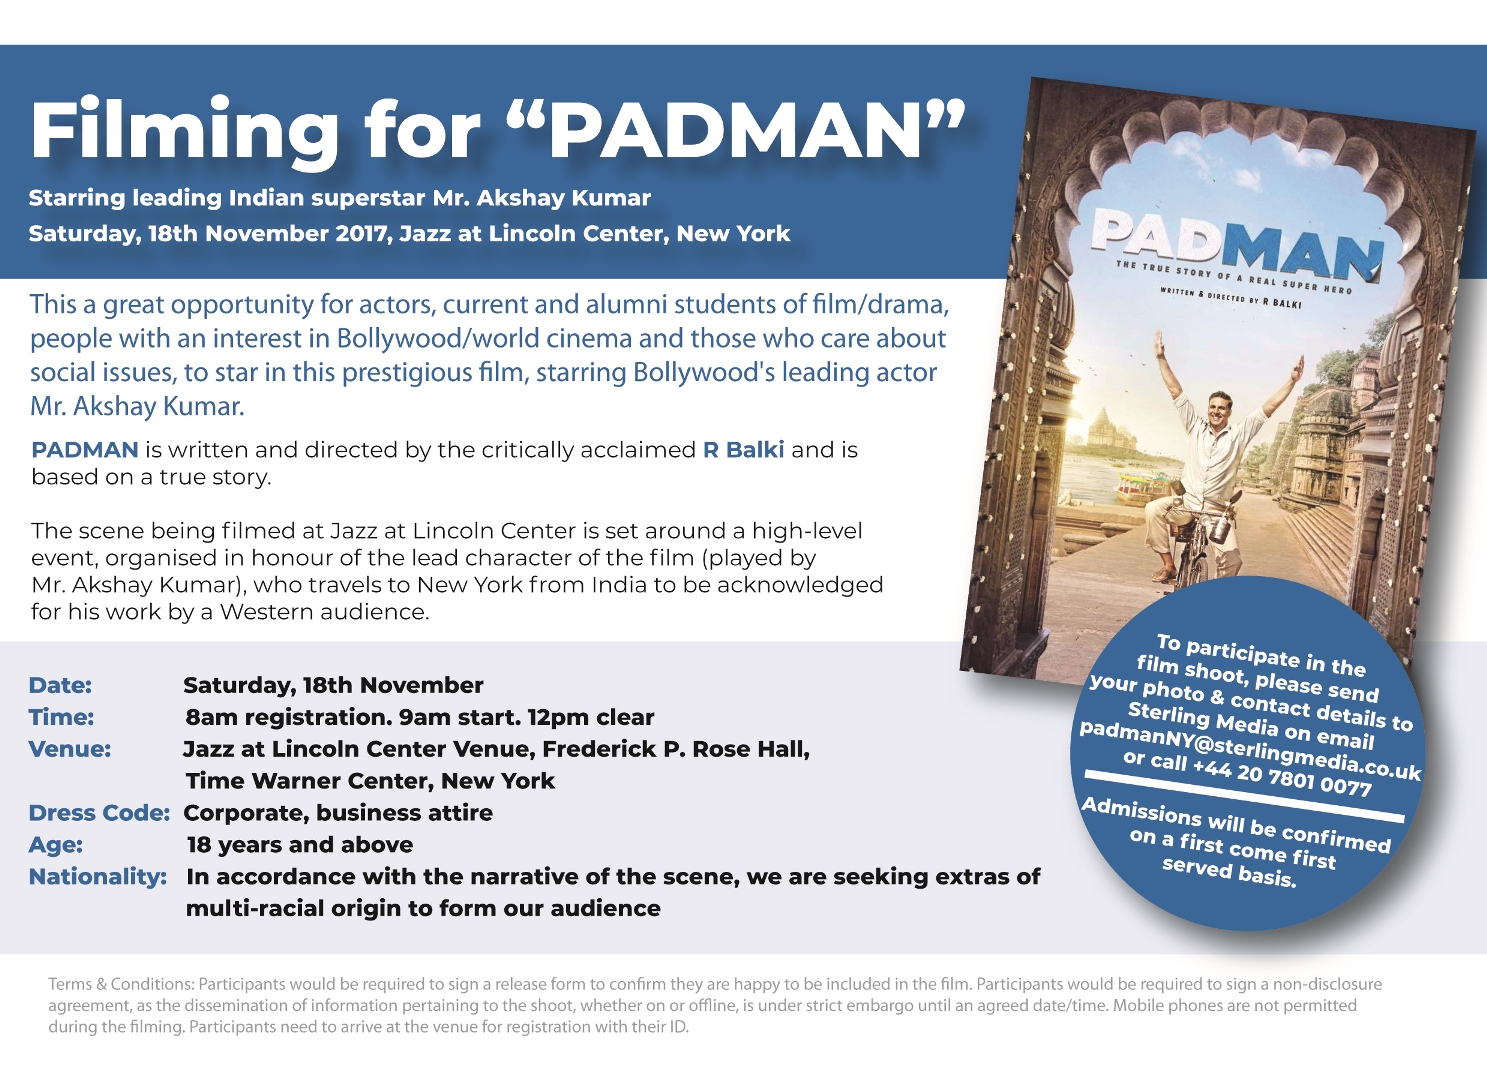 Padman Filming Opportunity